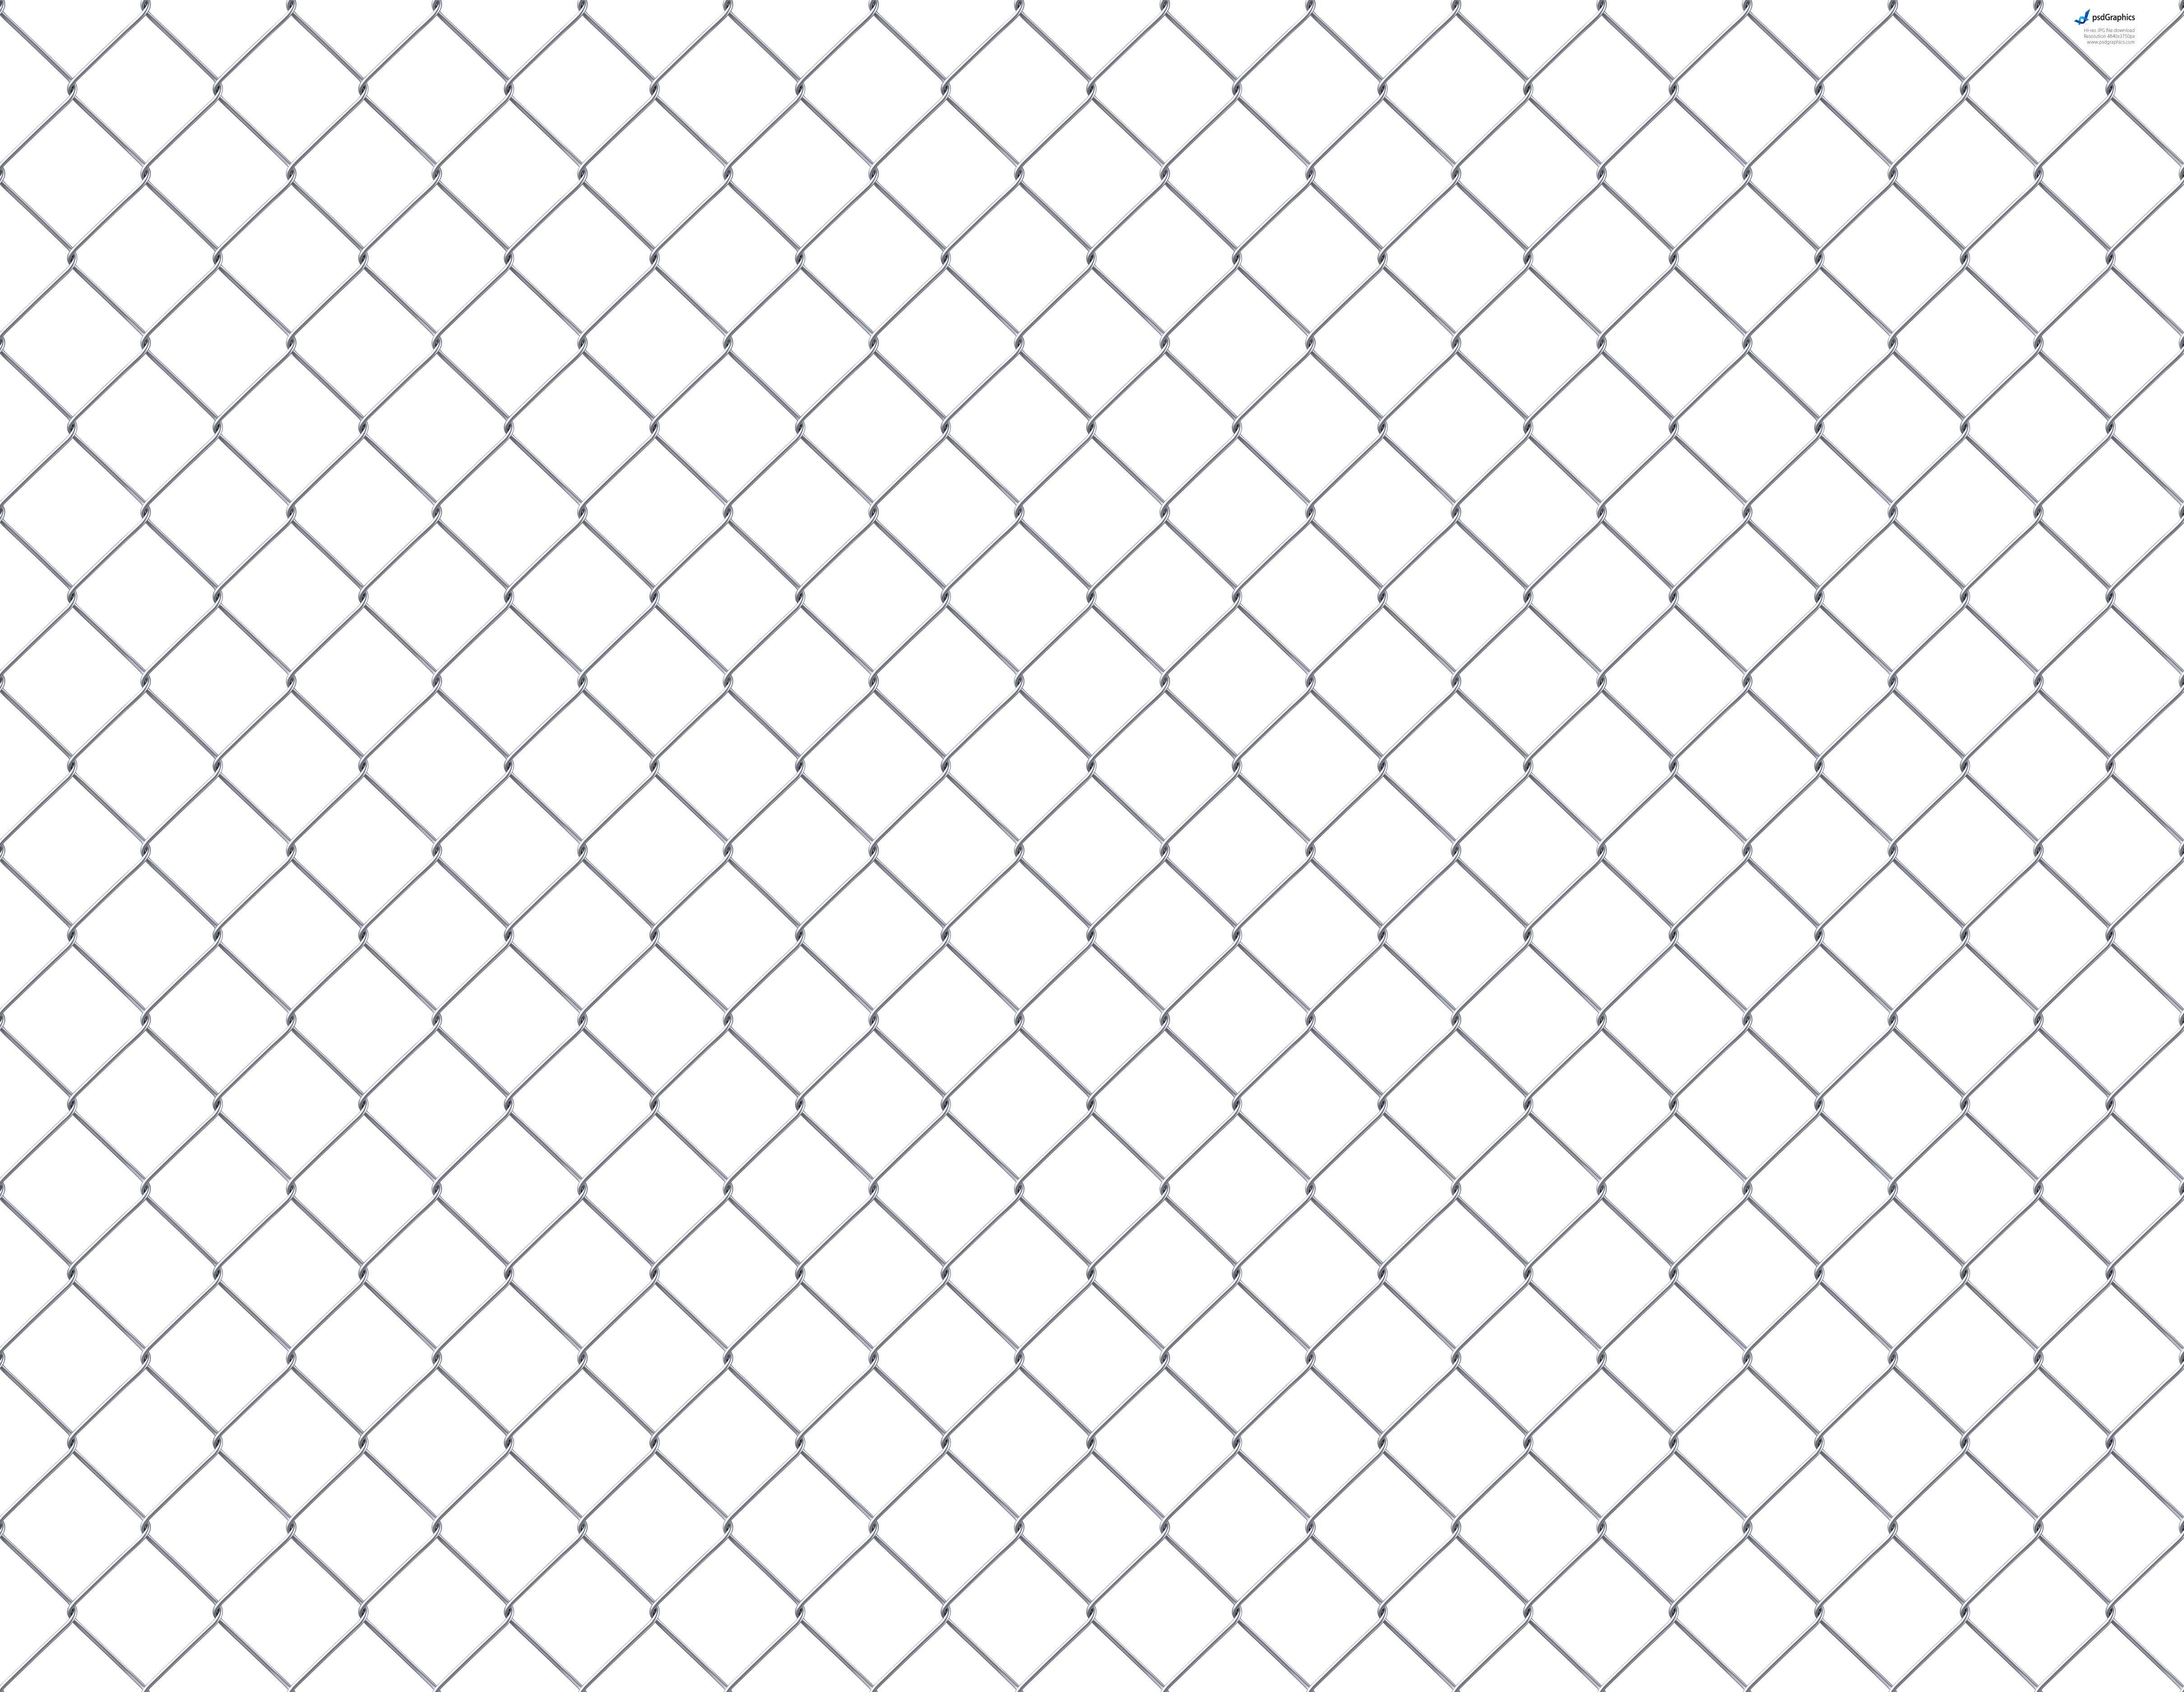 10 Chain Link Fence PSD Images